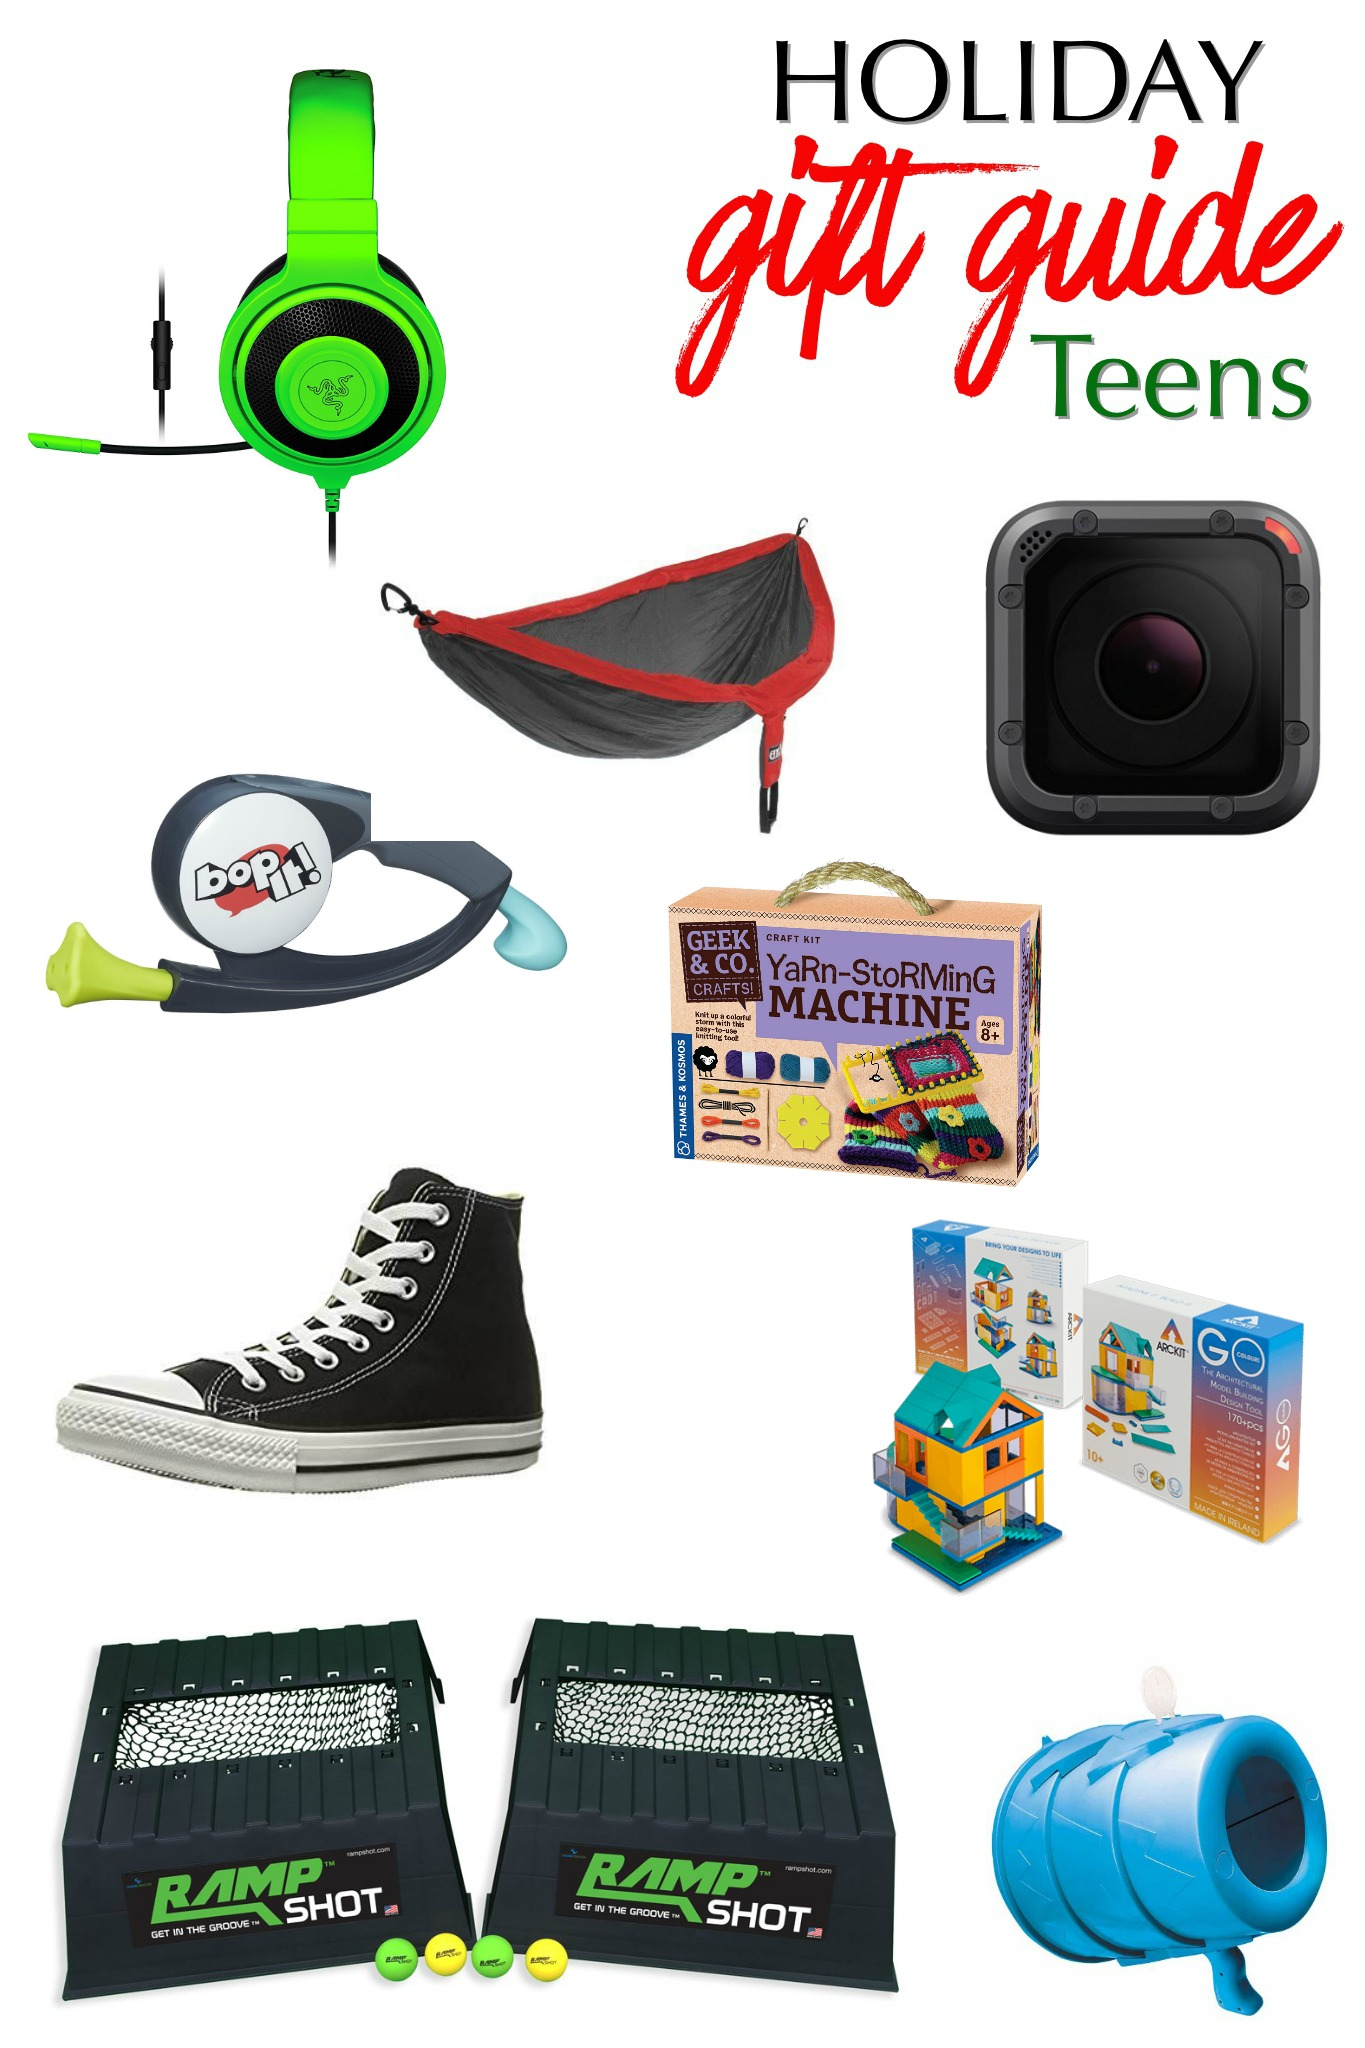 2015 holiday gift guide: teens | brightly.